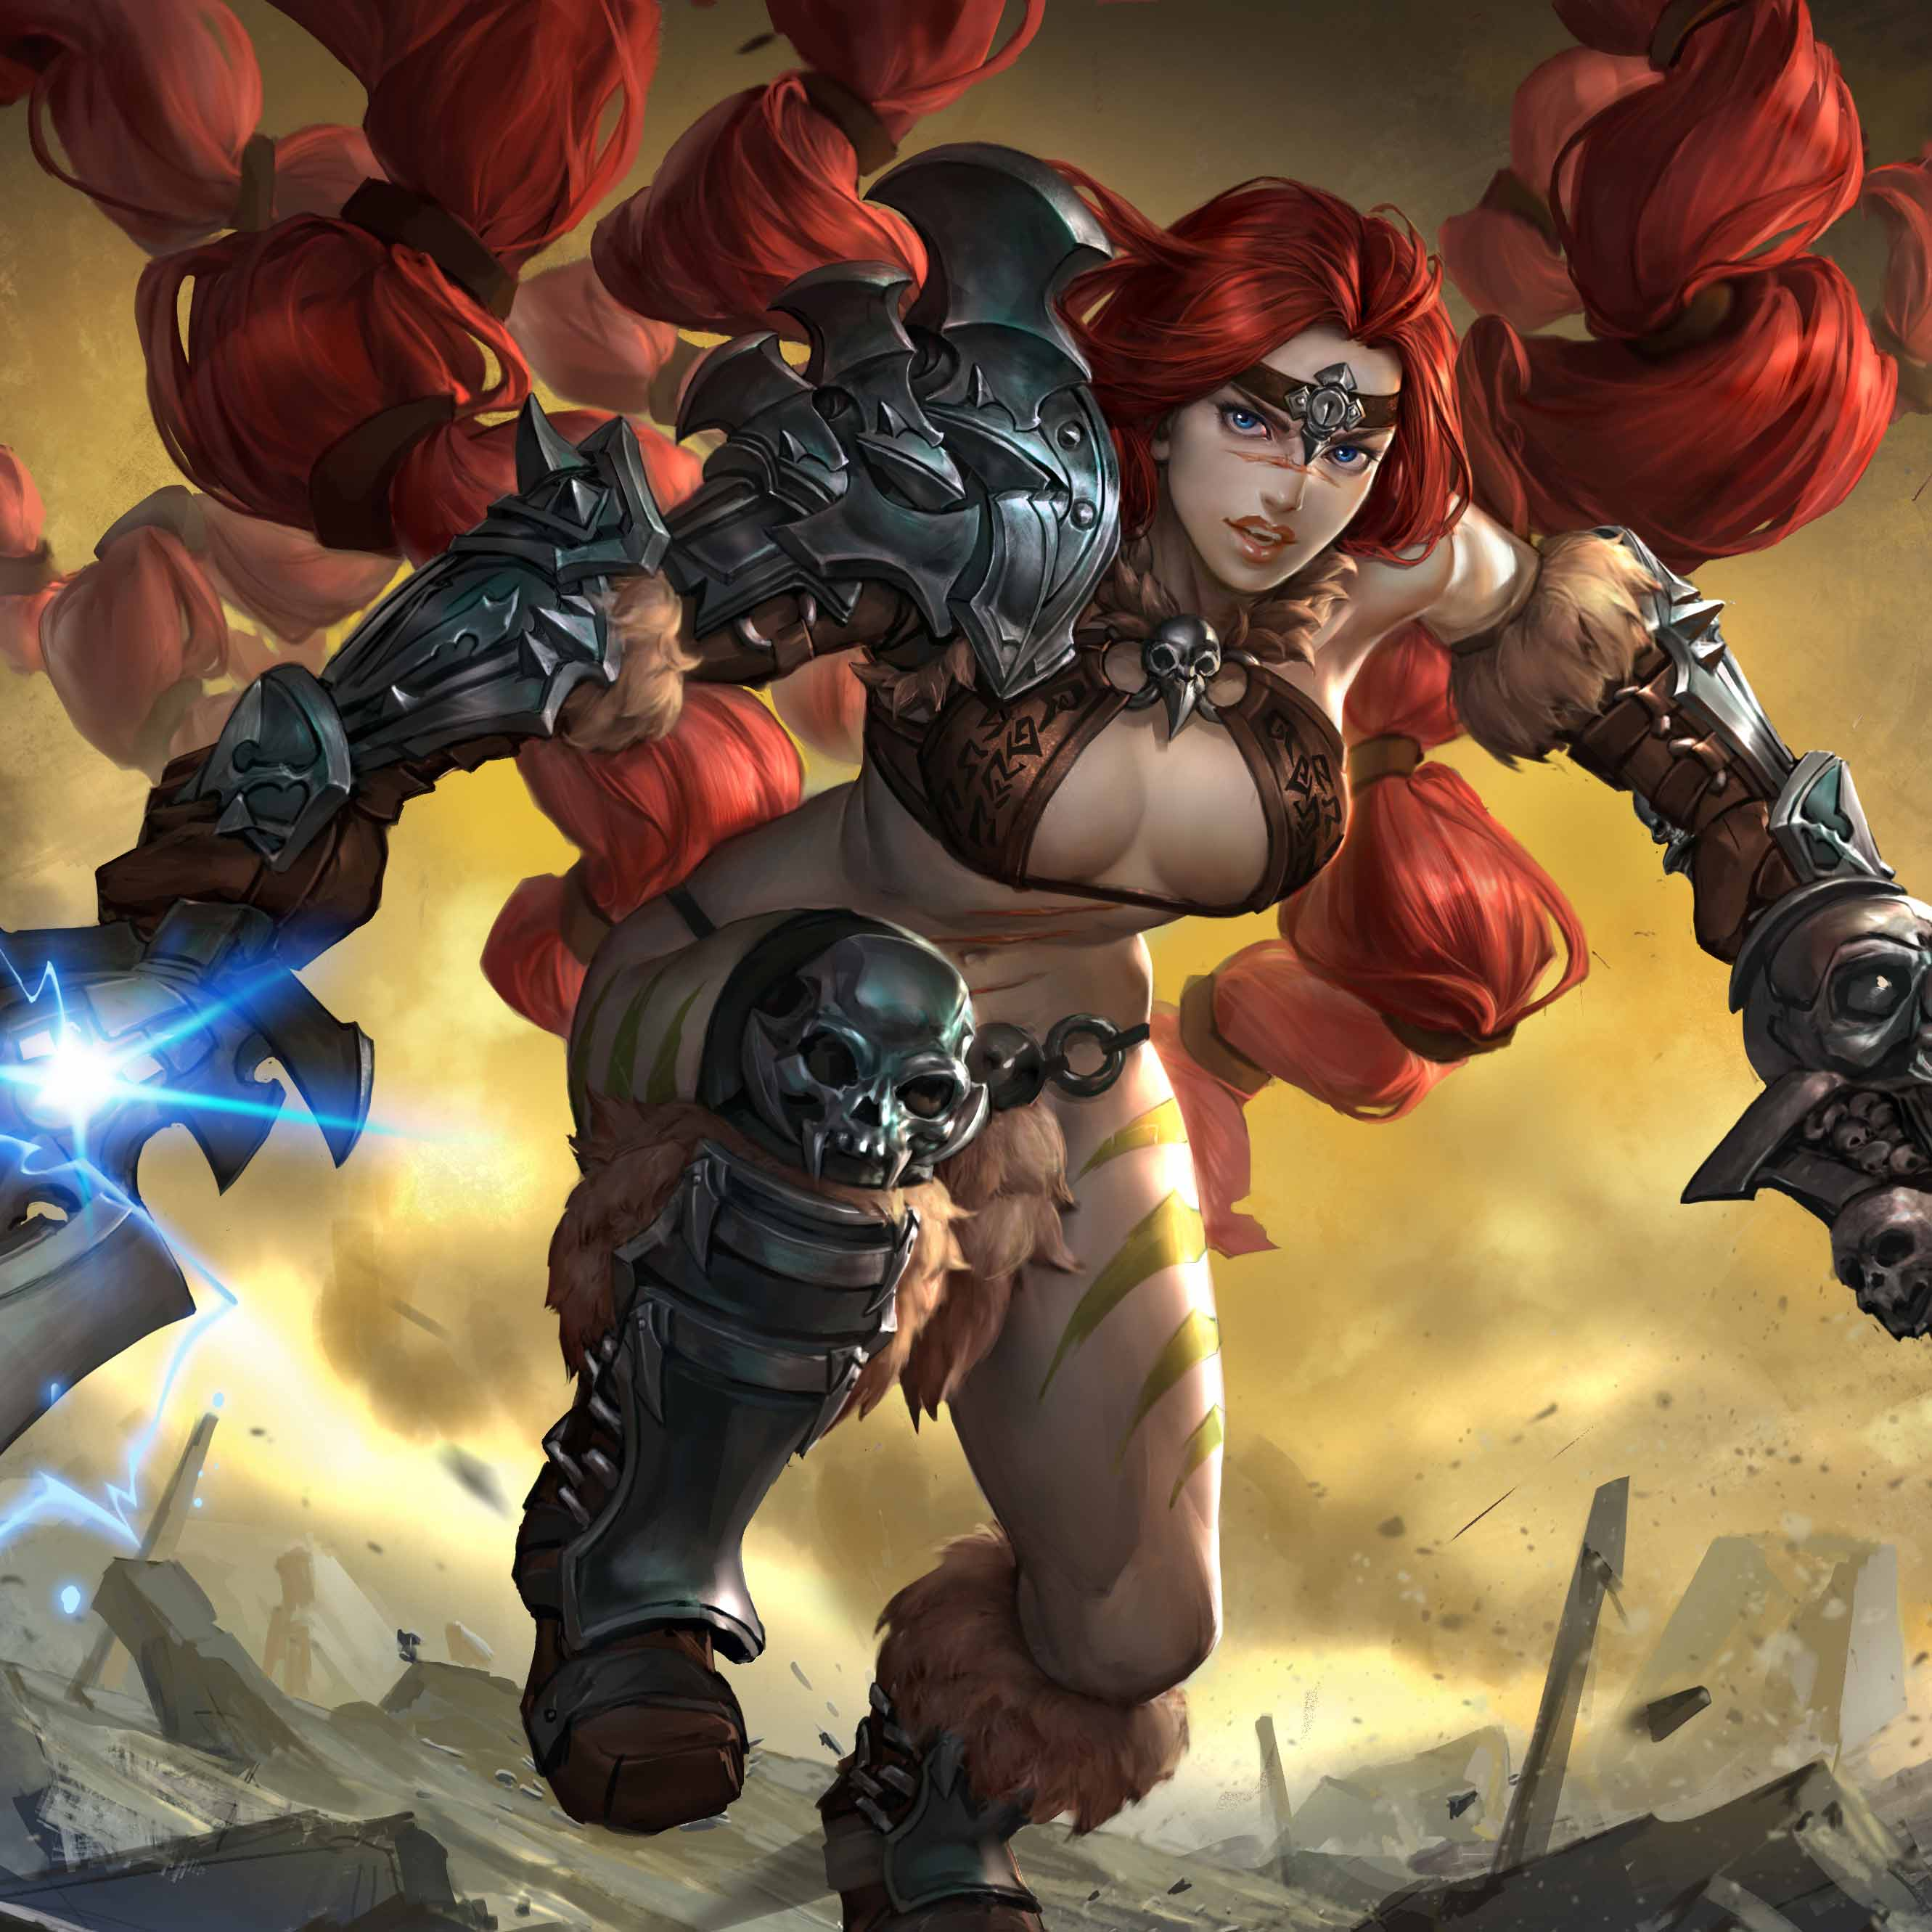 Check Out the Legendary 'Red' Rona skin!